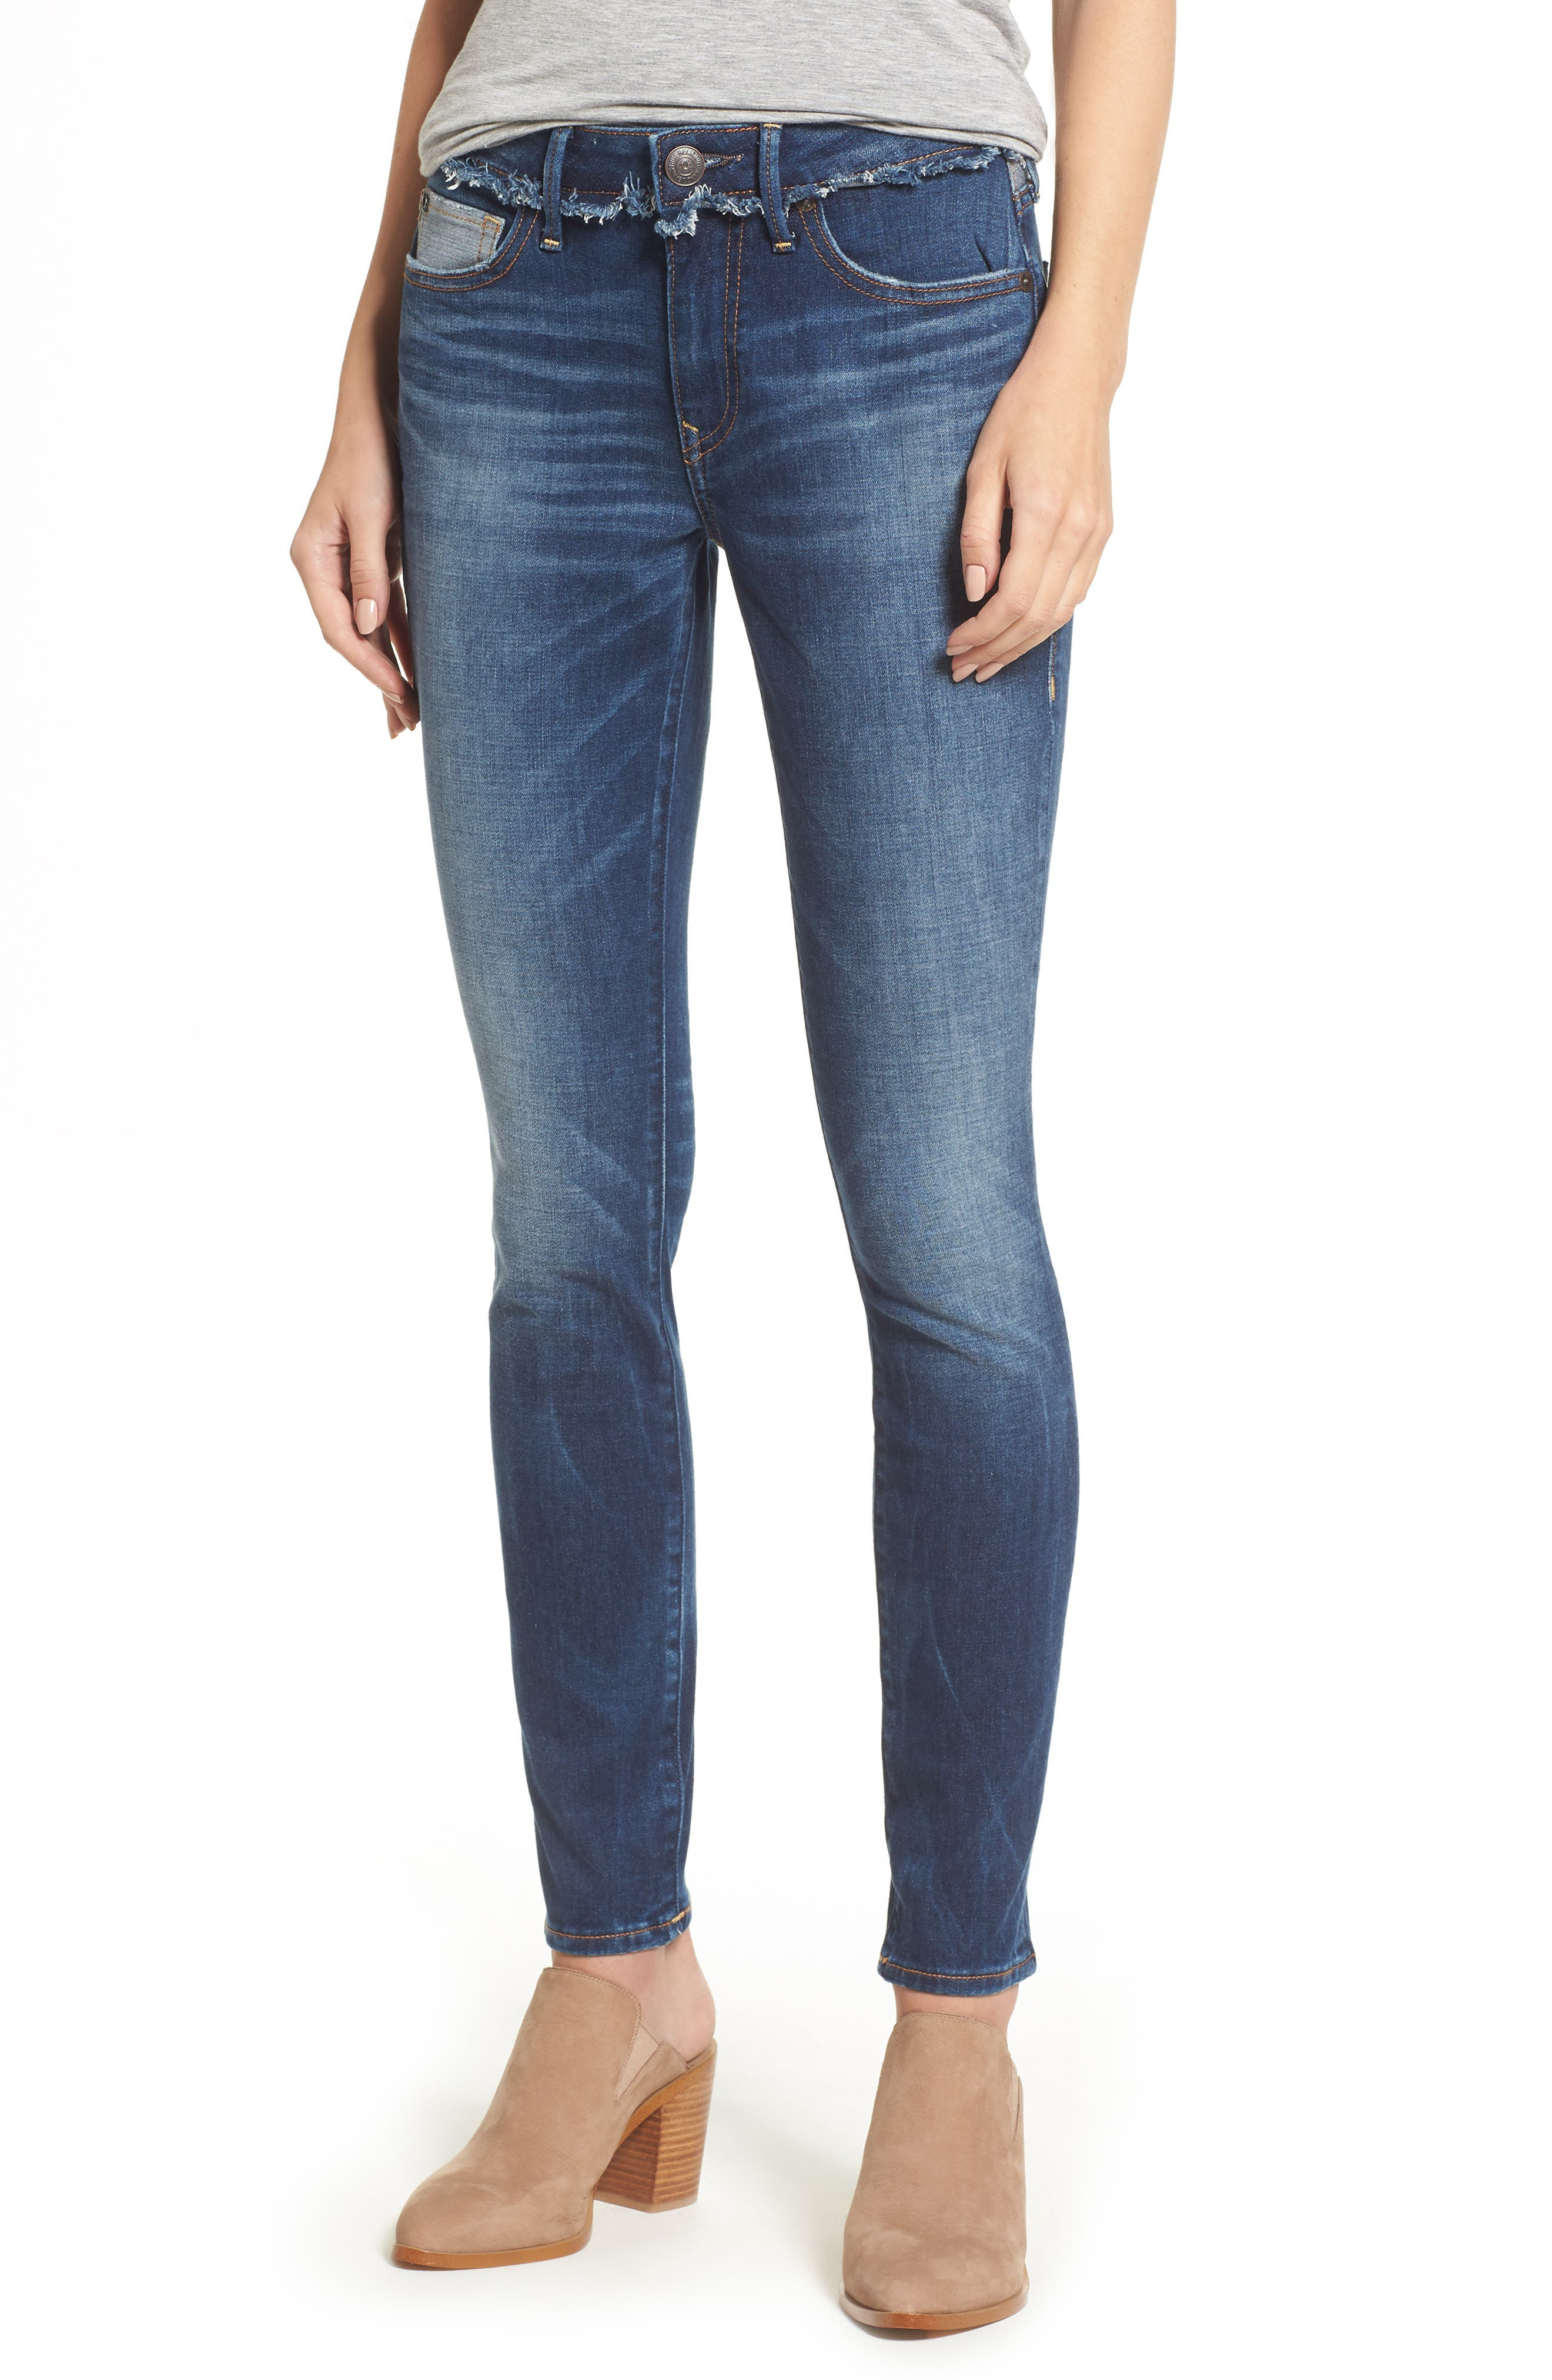 Jennie Deconstructed Skinny Jeans,                         Main,                         color, 401